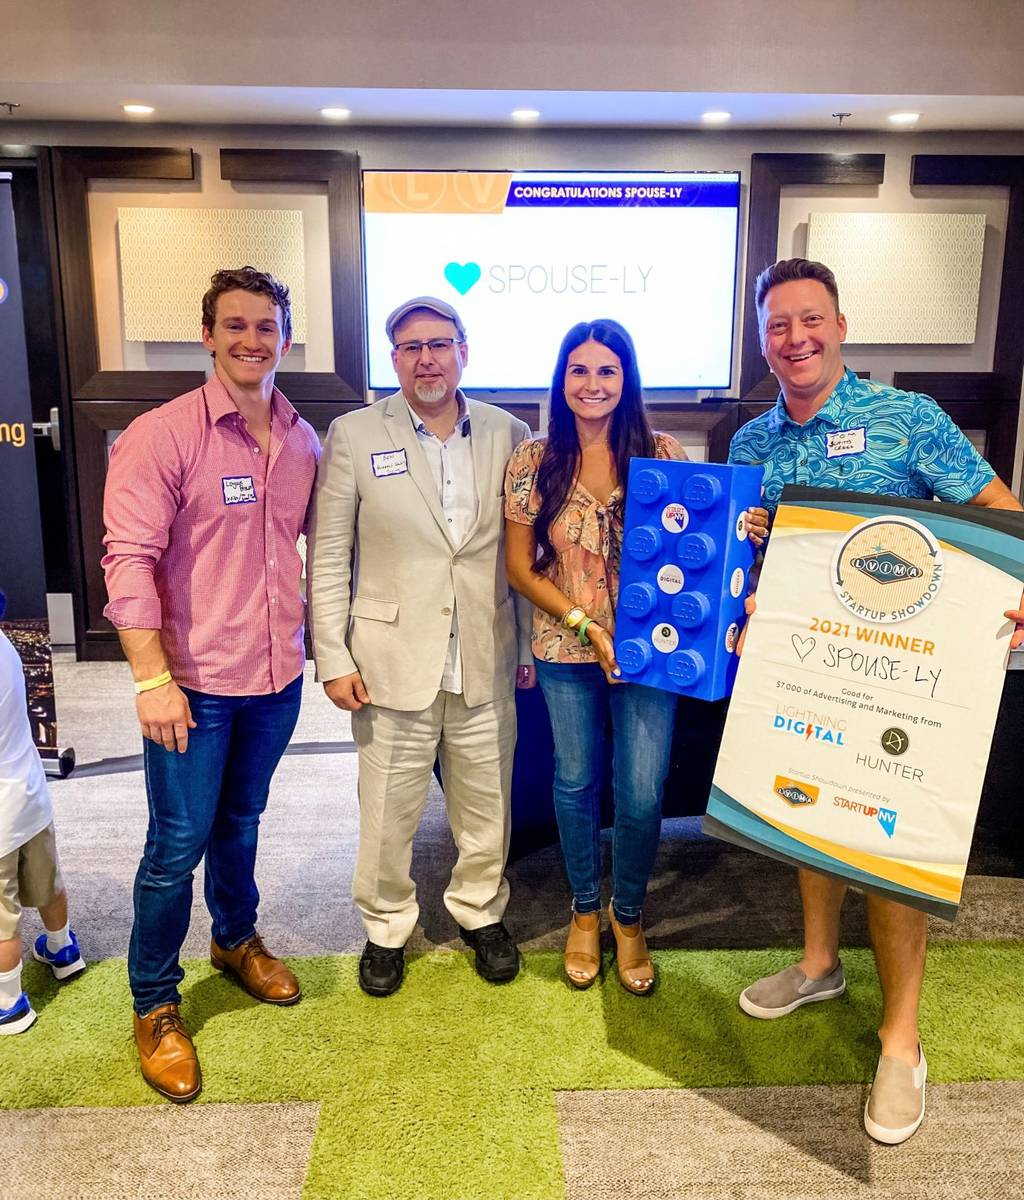 Monica Fullerton, center, won the Startup Showdown with her pitch for Spouse-ly. (LVIMA)